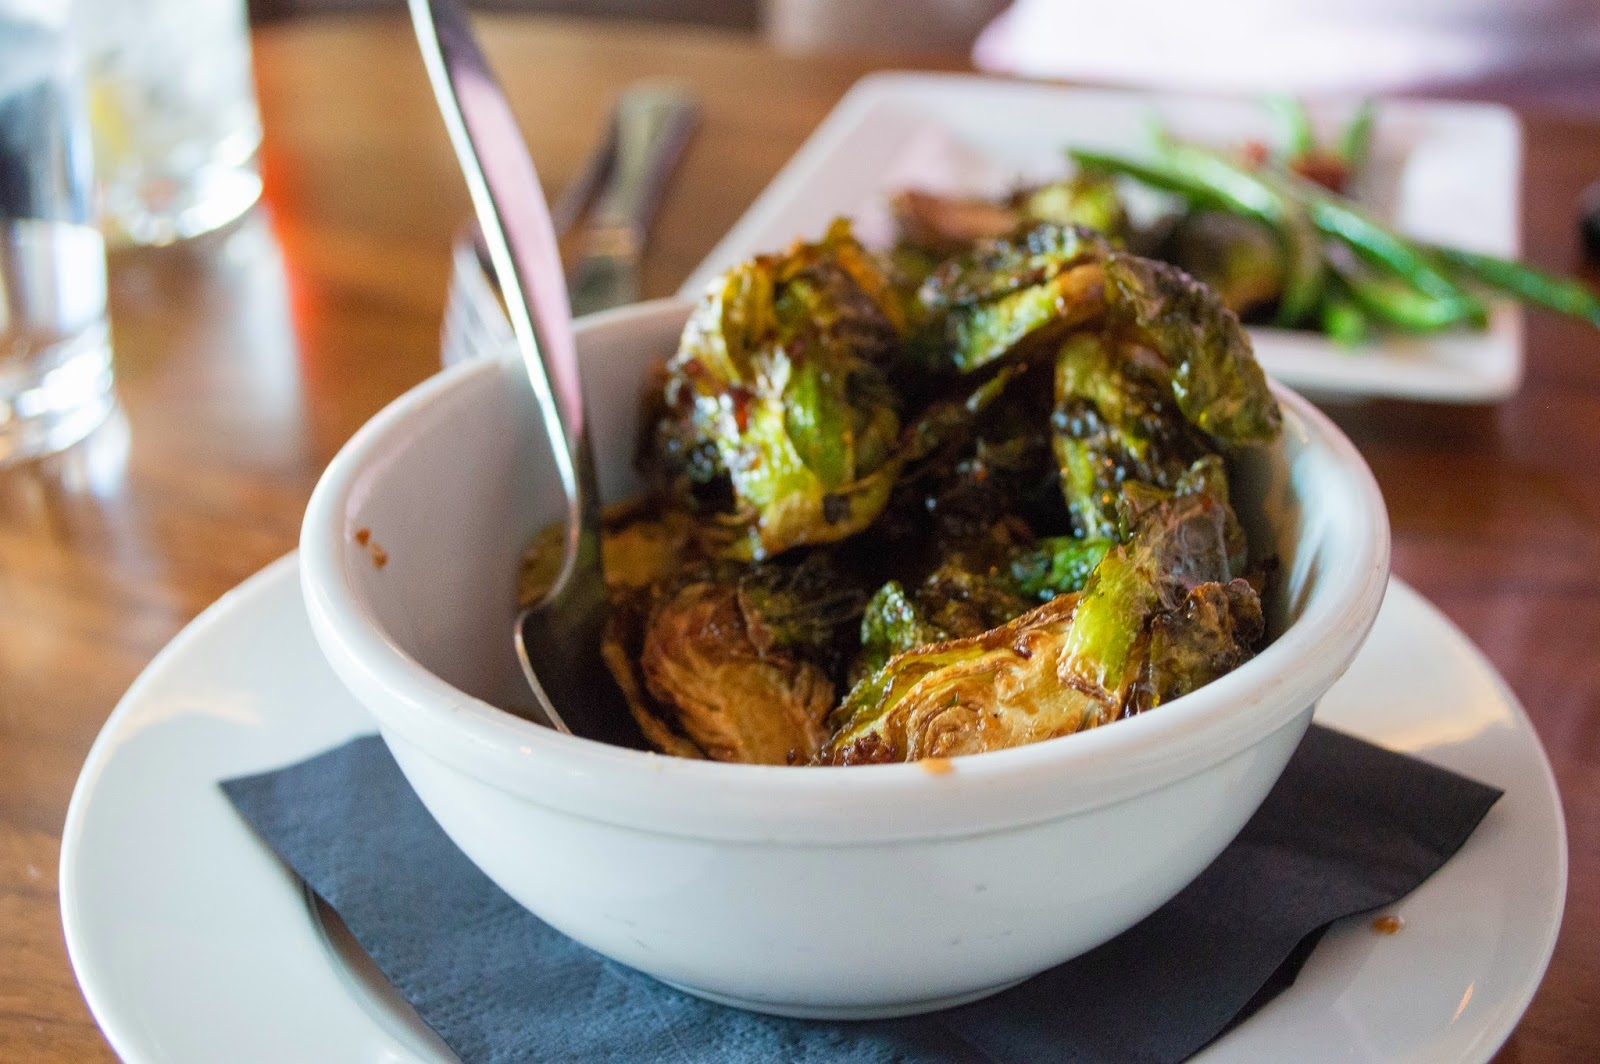 hubbards grill columbus ohio baked brussel sprouts